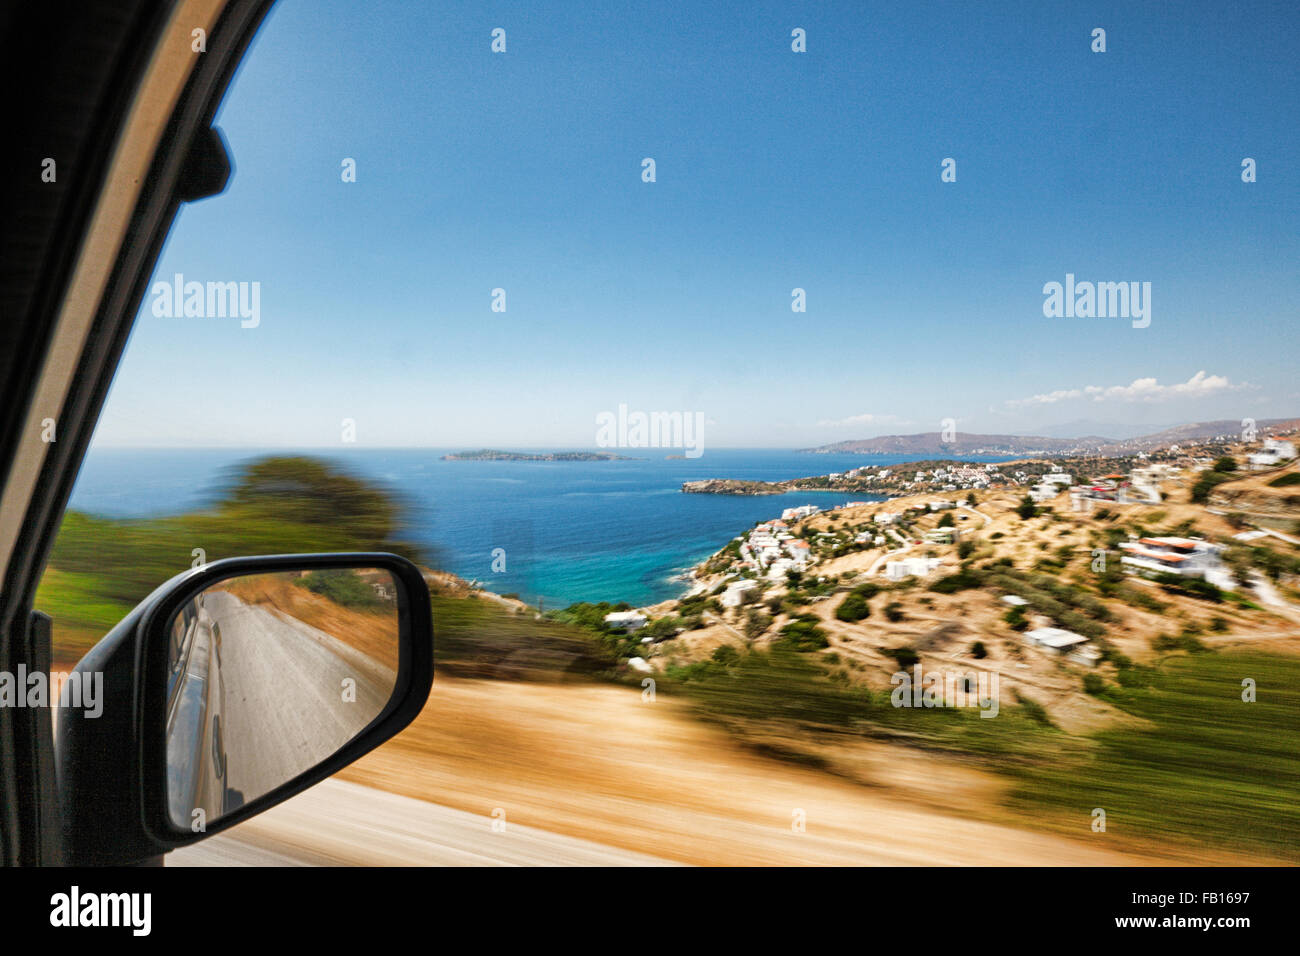 The view through the window from the perspective of the passenger in a moving car traveling around Andros, Greece - Stock Image